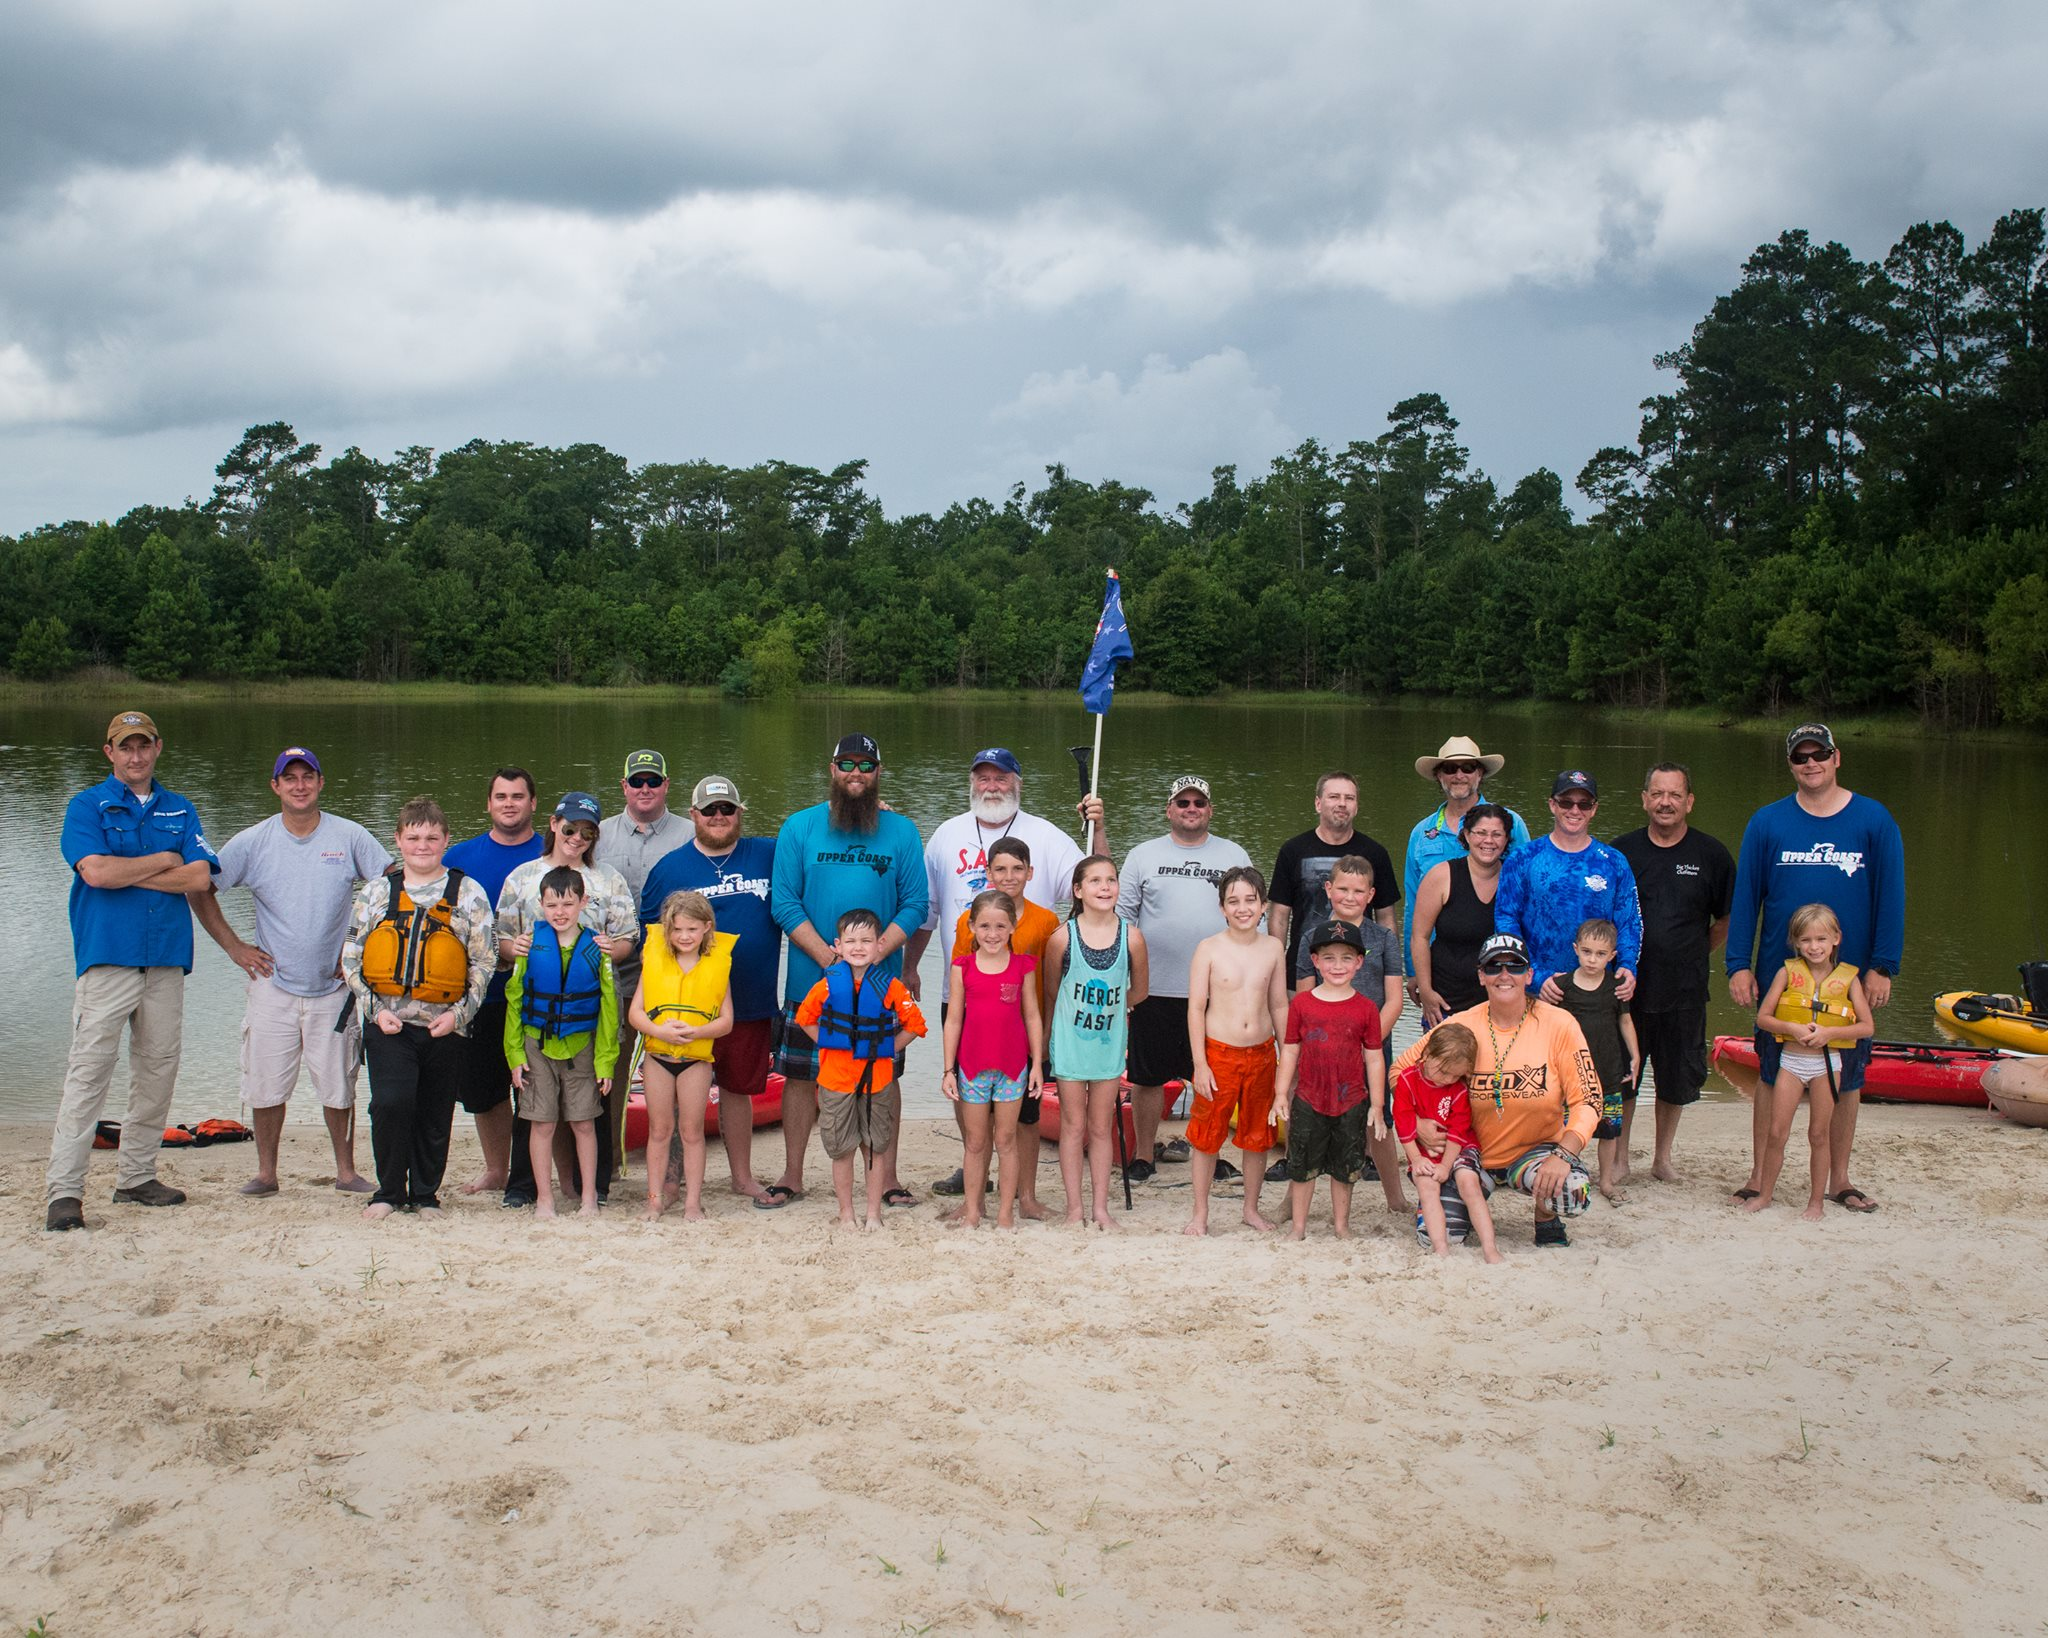 UCKA / HEROES ON THE WATER FAMILY SAFETY DAY 2017 ---SPECIAL THANKS TO OUR GRACIOUS HOSTS @ BIG THICKET OUTFITTERS!!!